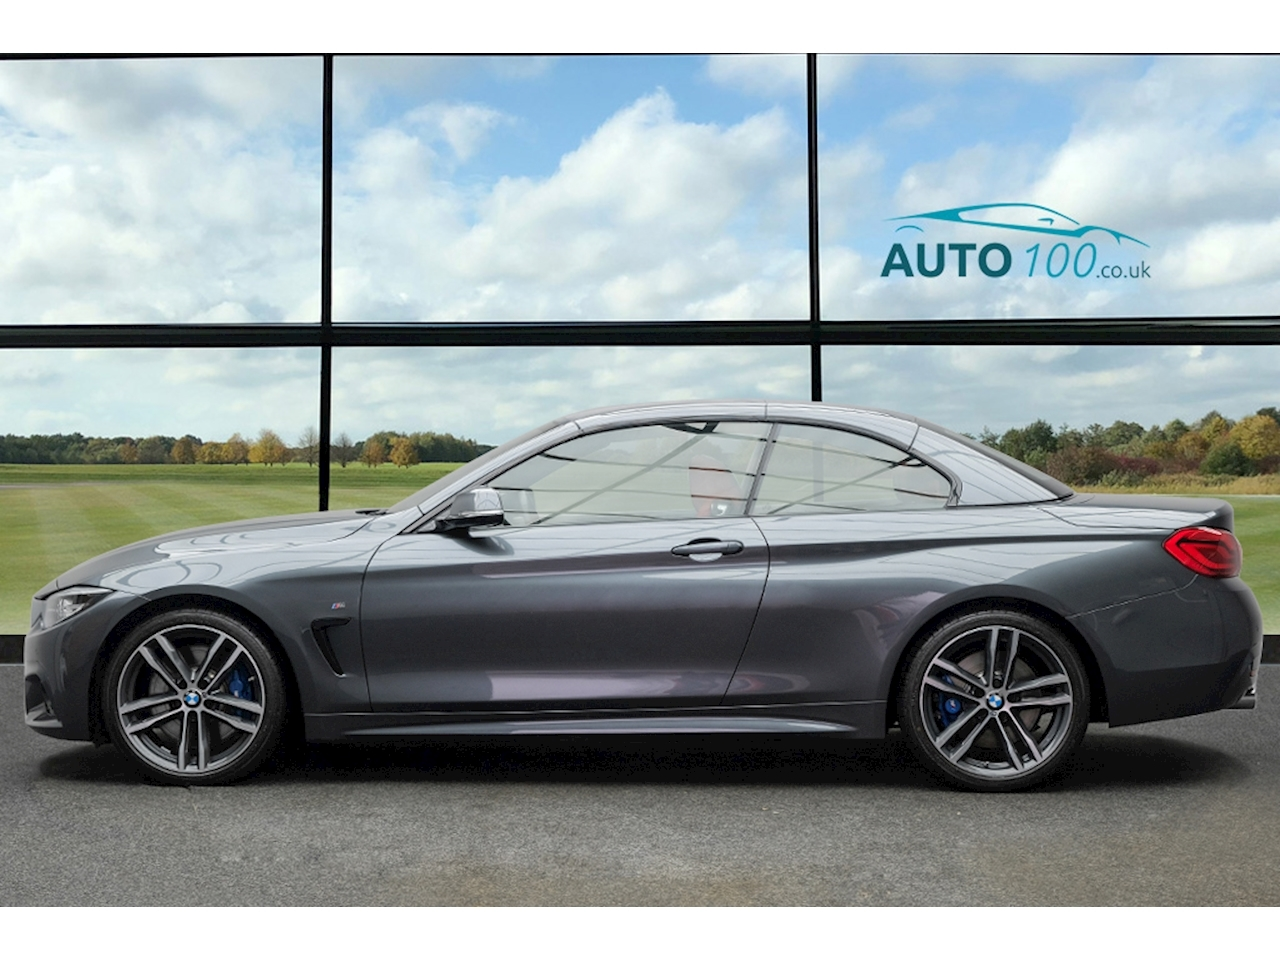 BMW 3.0 440i M Sport Convertible 2dr Petrol Auto (s/s) (326 ps)